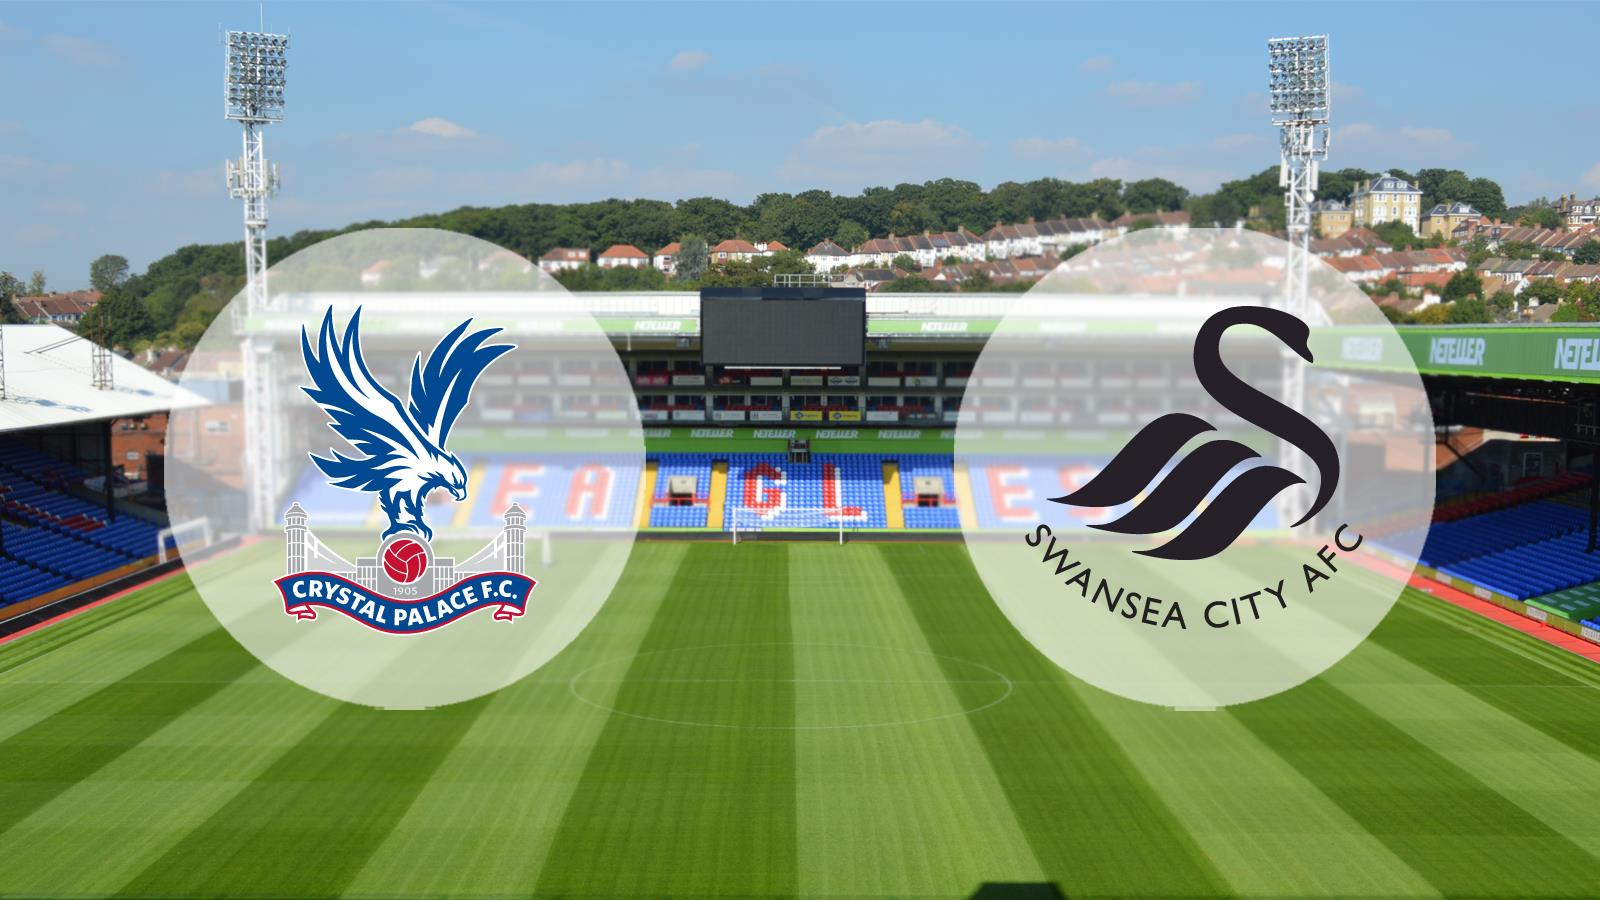 swansea-city-vs-crystal-palace